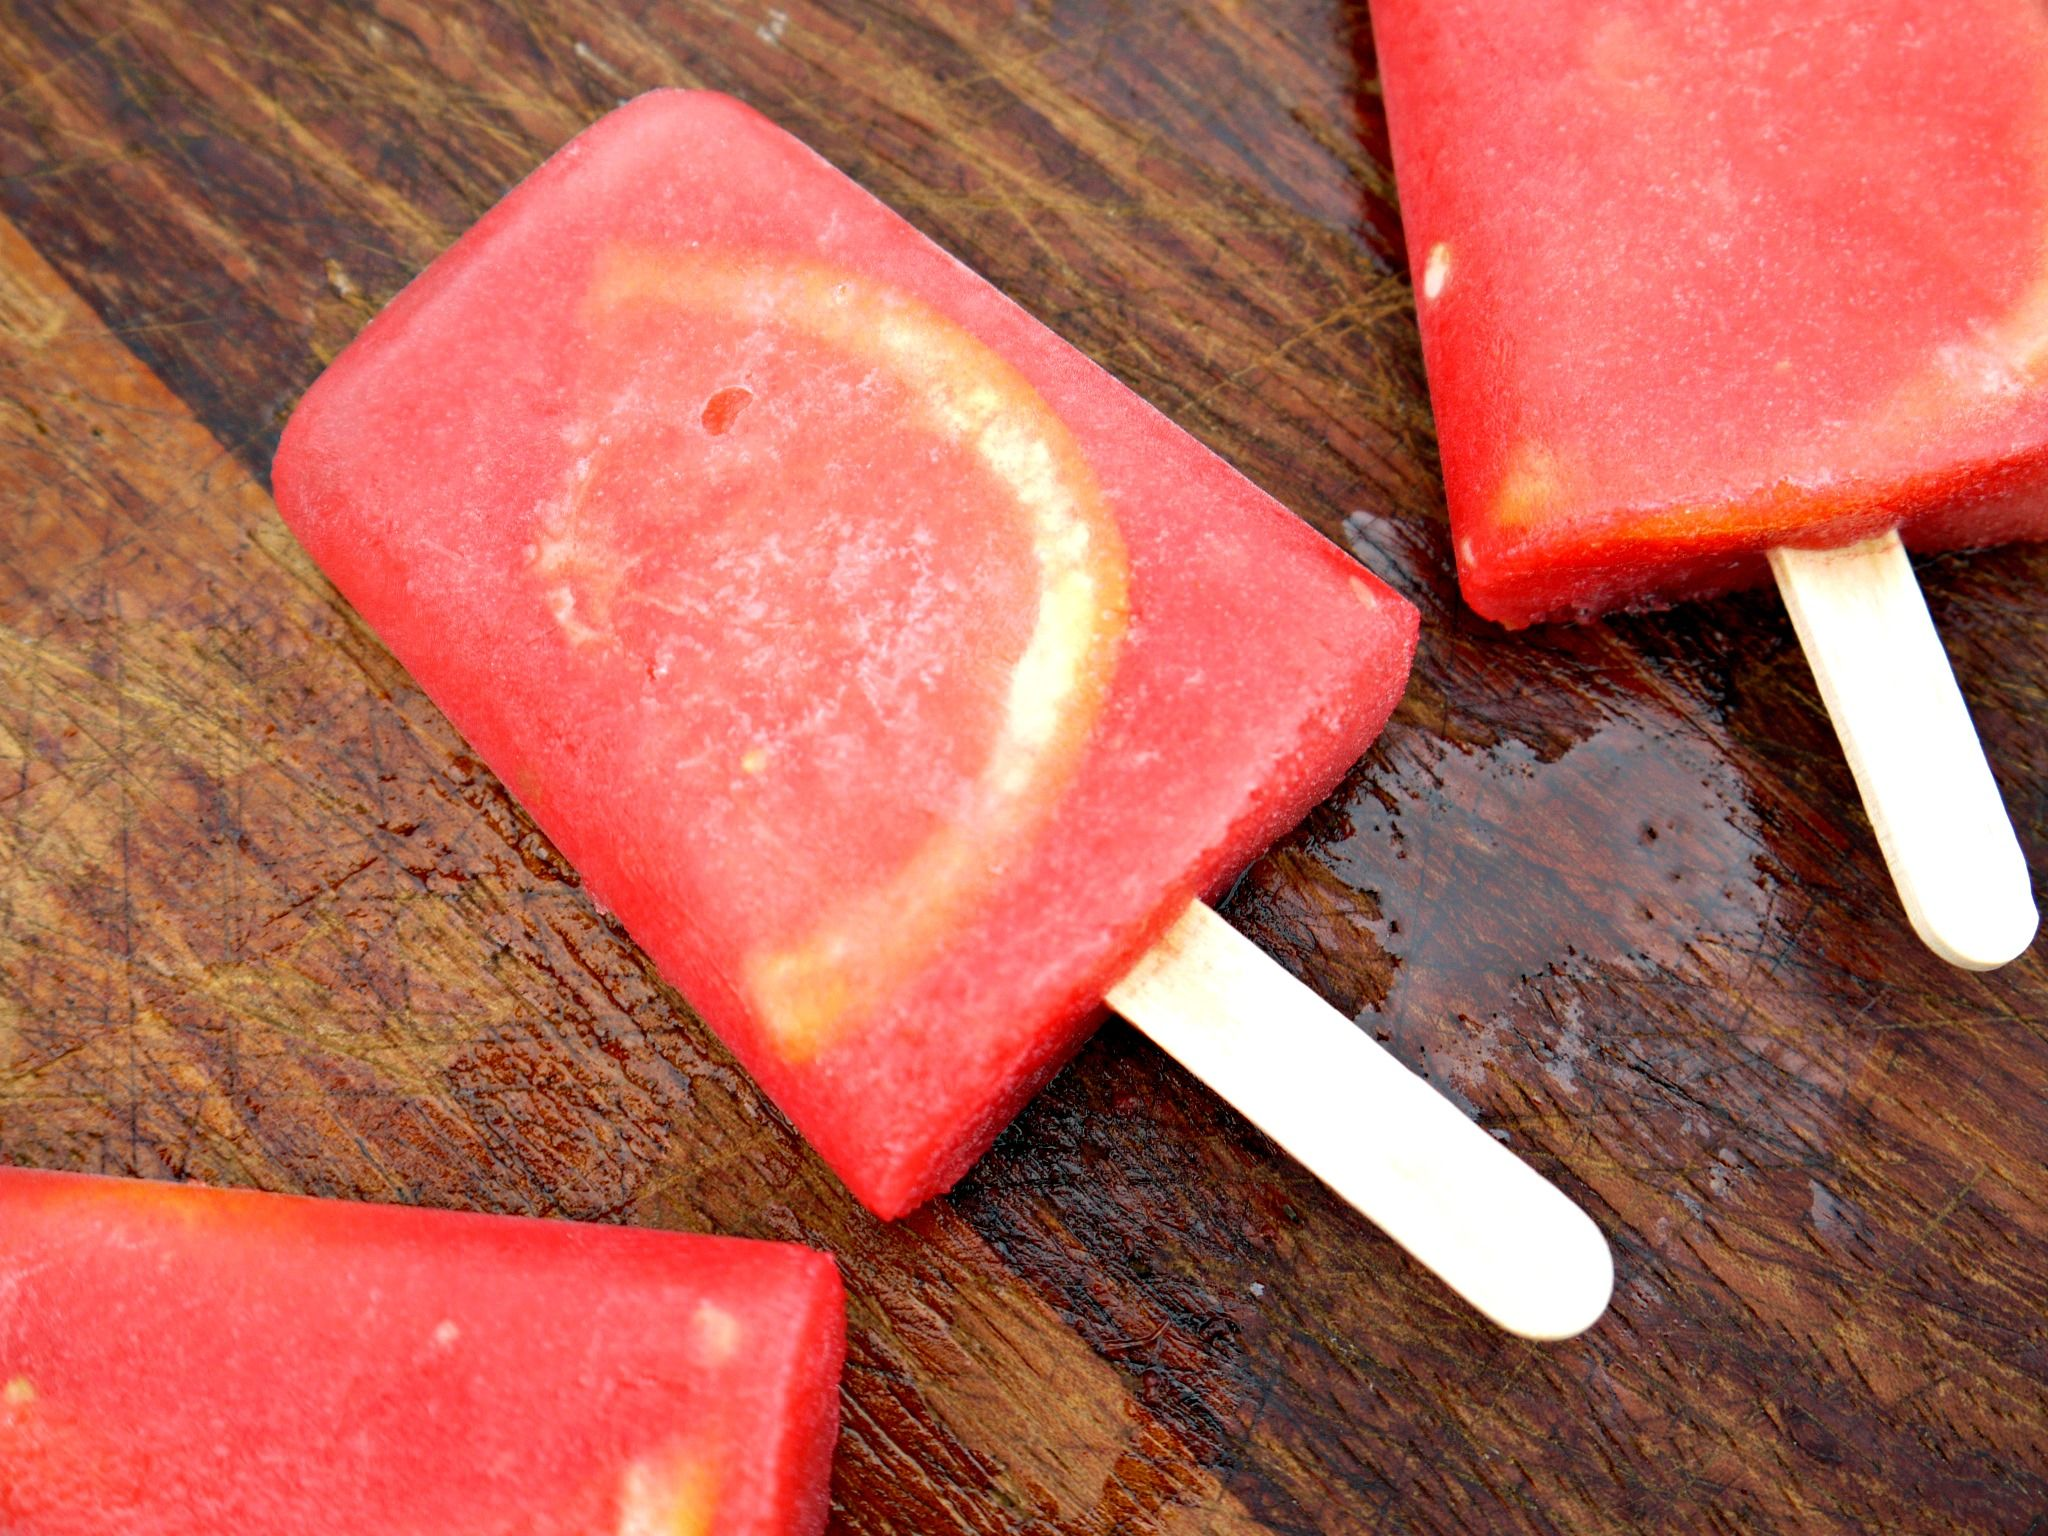 The most refreshing & easy treat you will make this Summer! Cut up some watermelon & blend it using a handblender. Slice some grapefruit. Pour the blended watermelon into popsicle containers (Dunnes Stores, any value store) &stuff in 1 or 2 wedges of grapefruit. Freeze them for a few hours or overnight. These are delicious, …